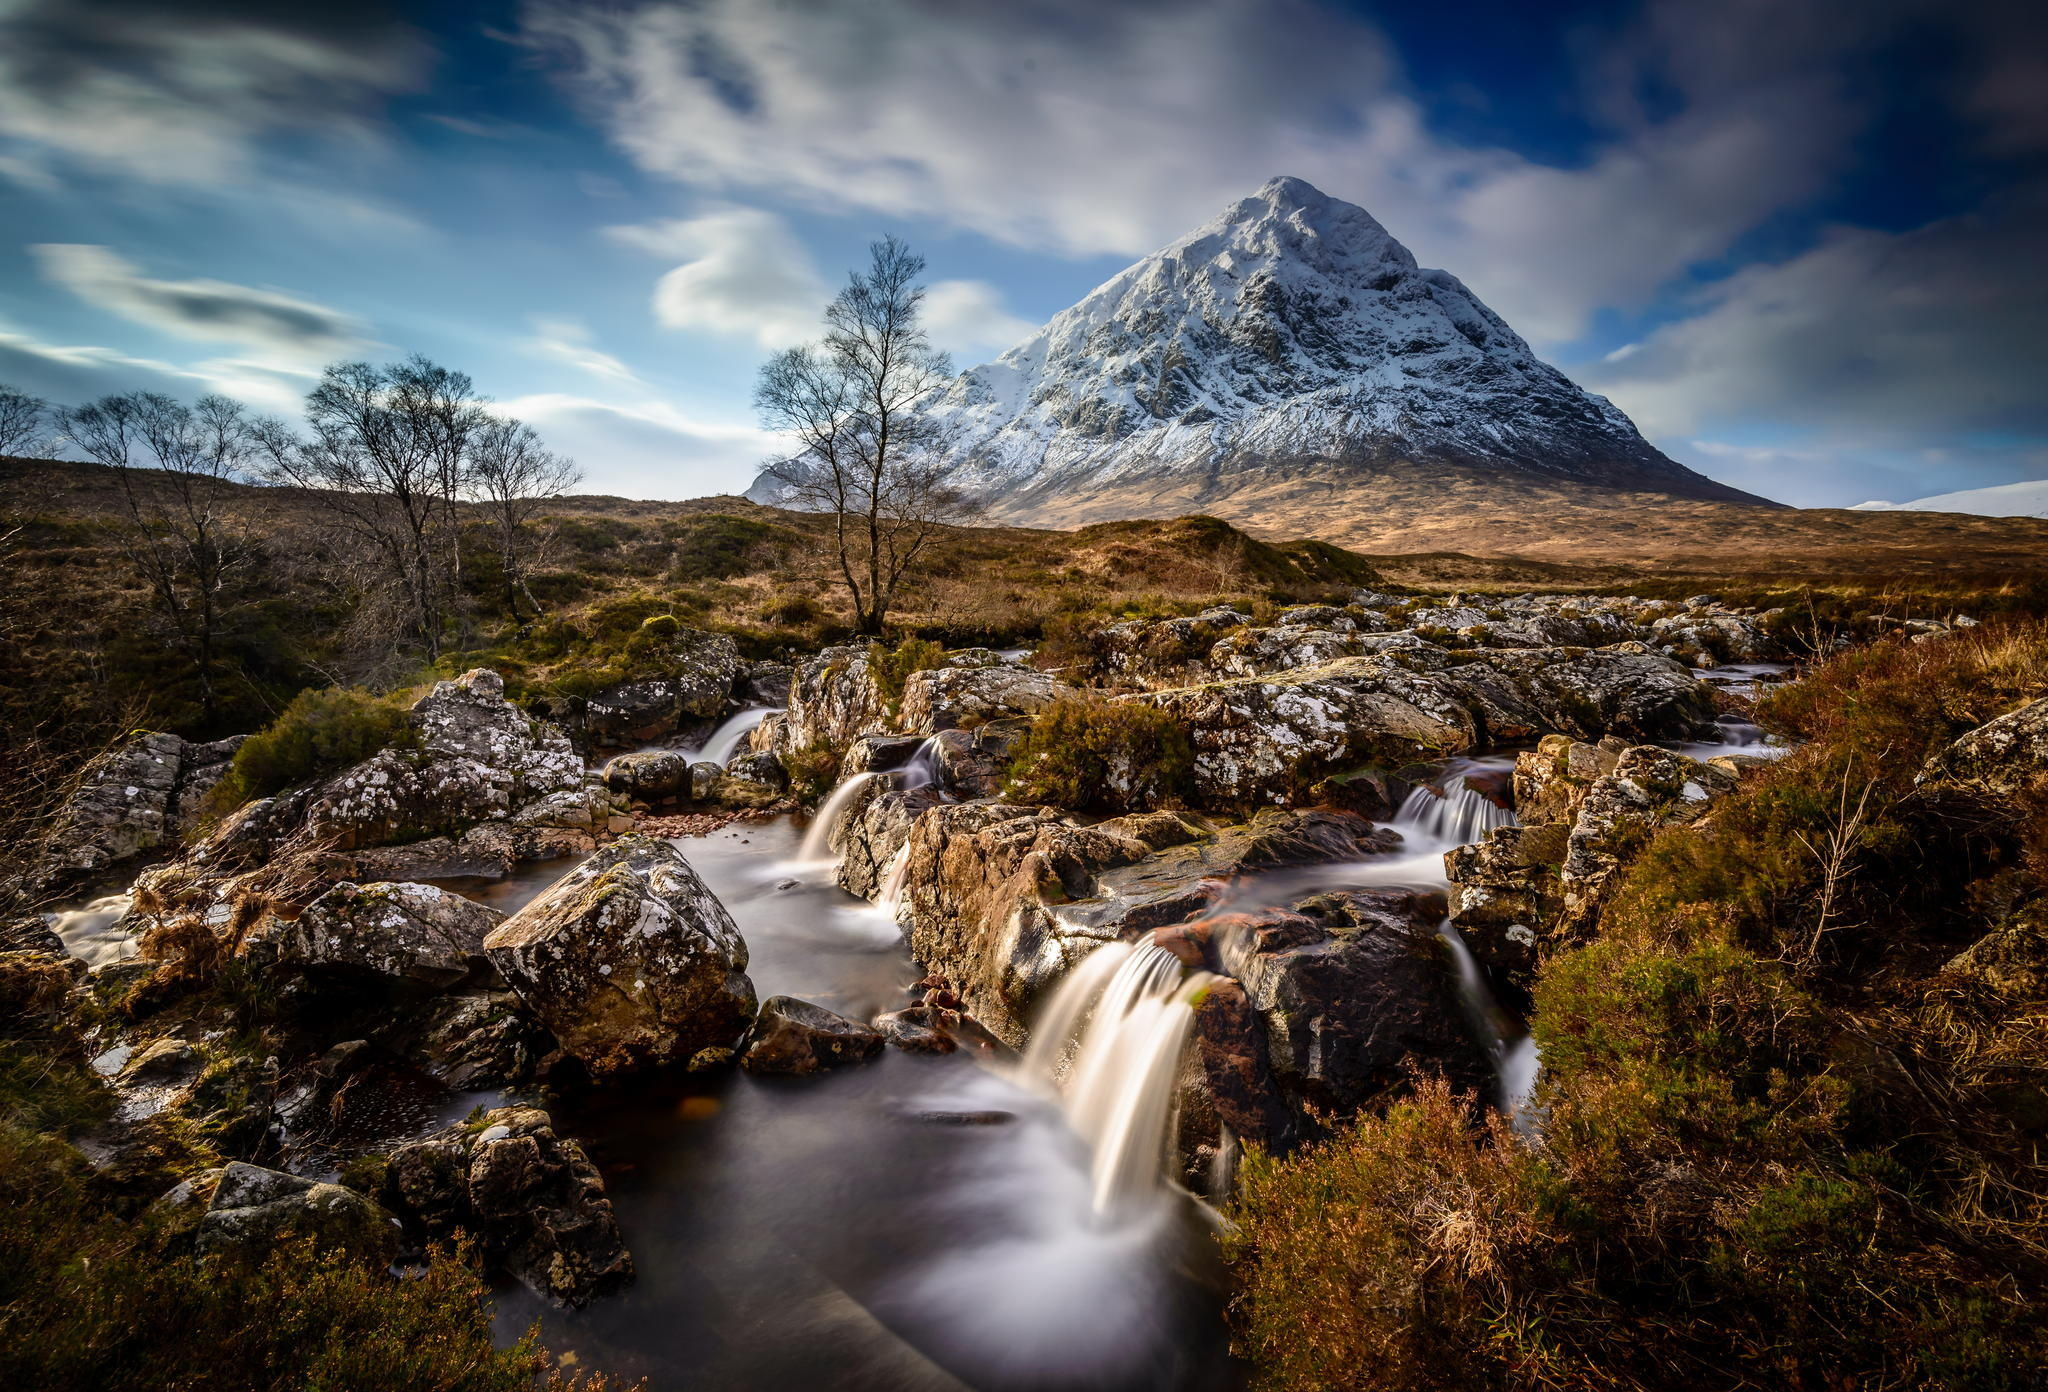 124037 download wallpaper Mountains, Nature, Rivers, Trees, Grass, Stones screensavers and pictures for free